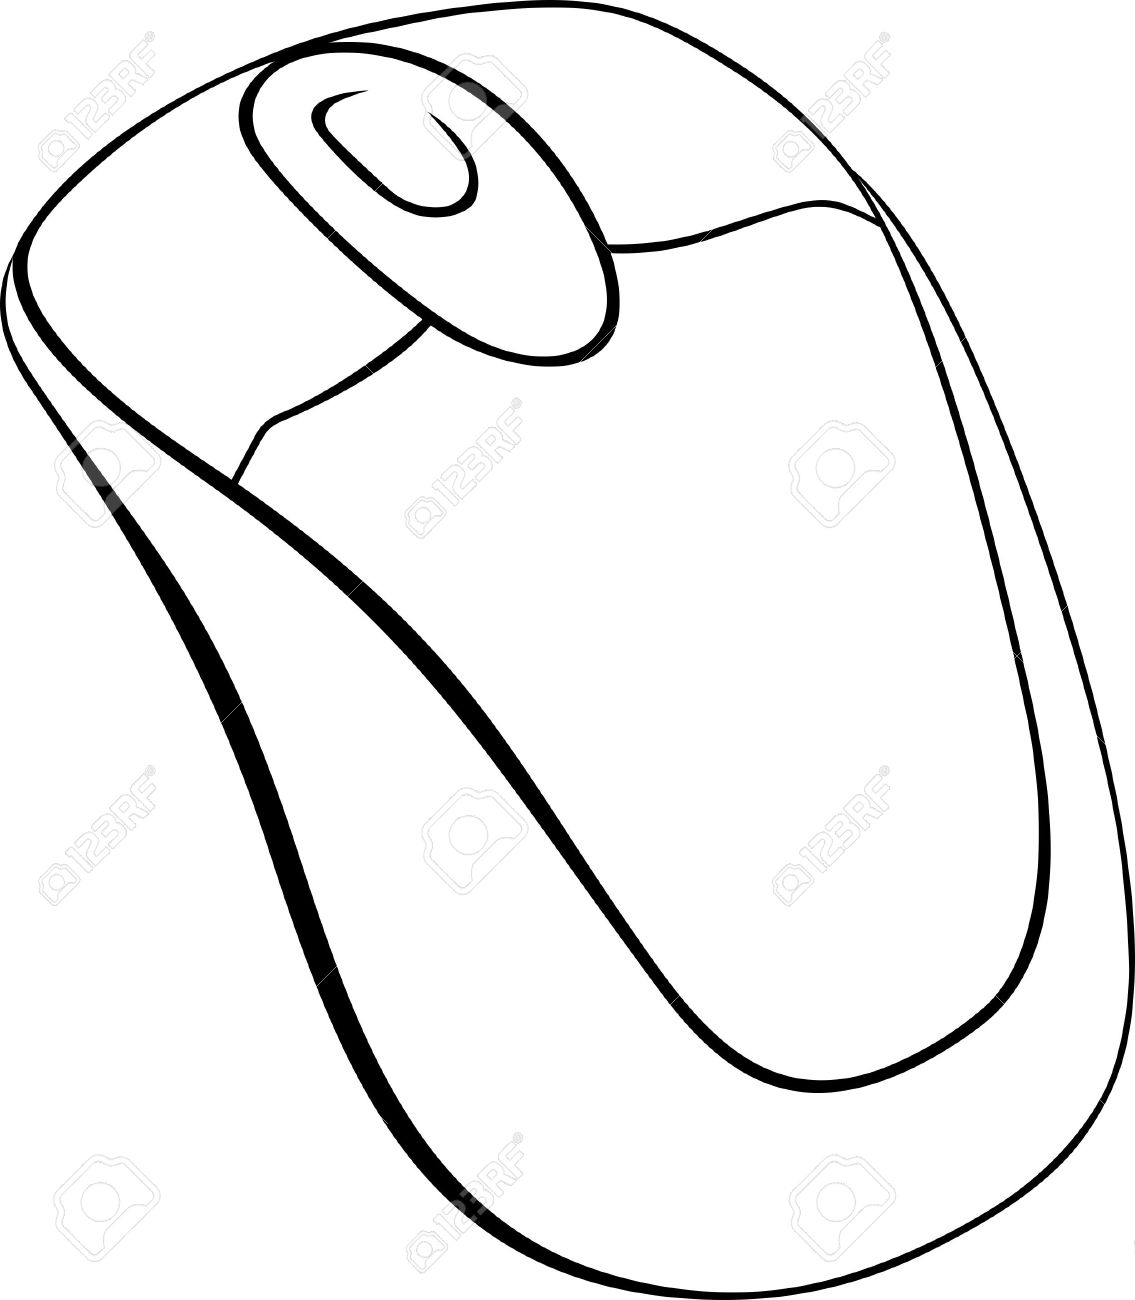 Mouse Computer Drawing At Getdrawings